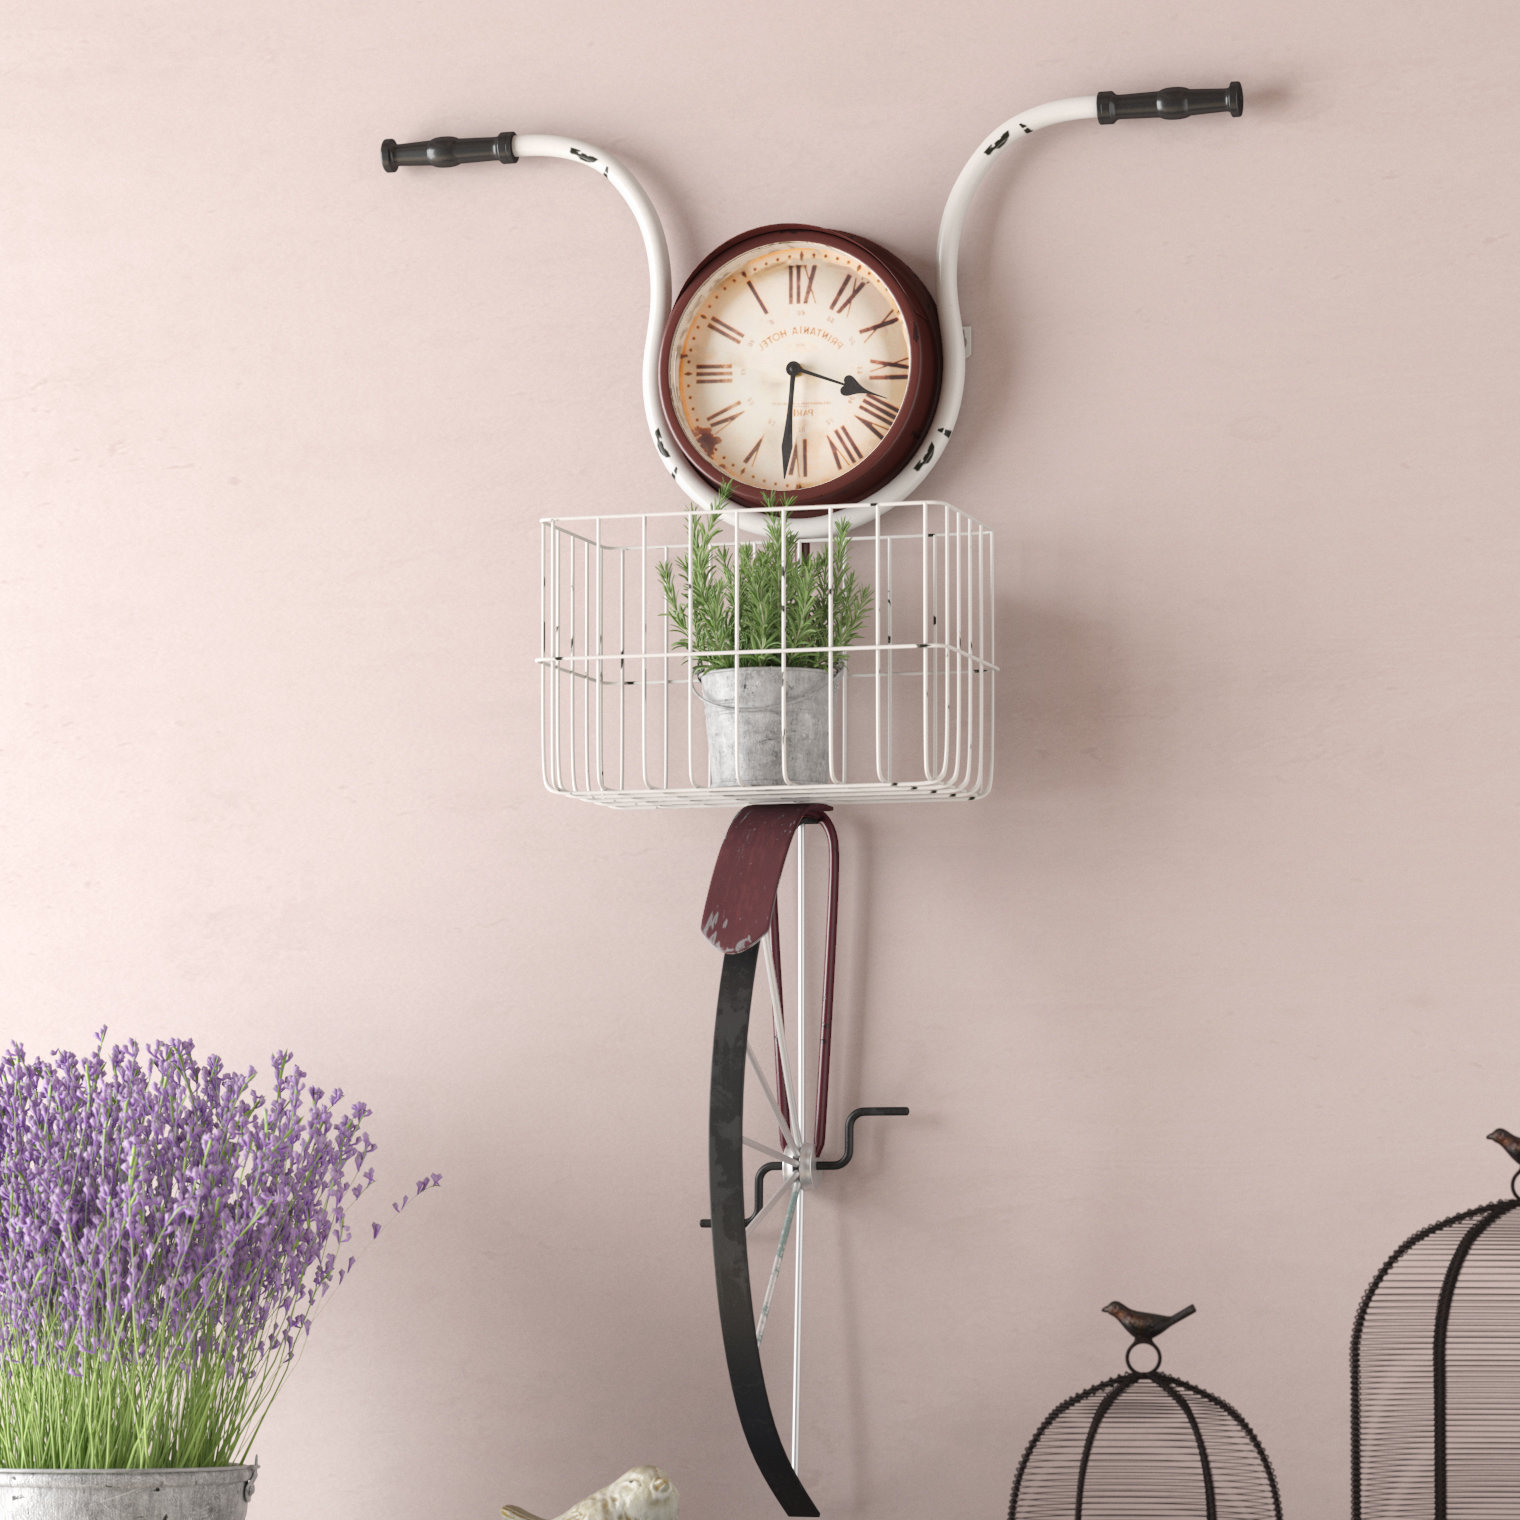 Bike Wall Decor By August Grove Intended For 2019 August Grove Andrewson Bicycle Wall Clock & Reviews (Gallery 20 of 20)